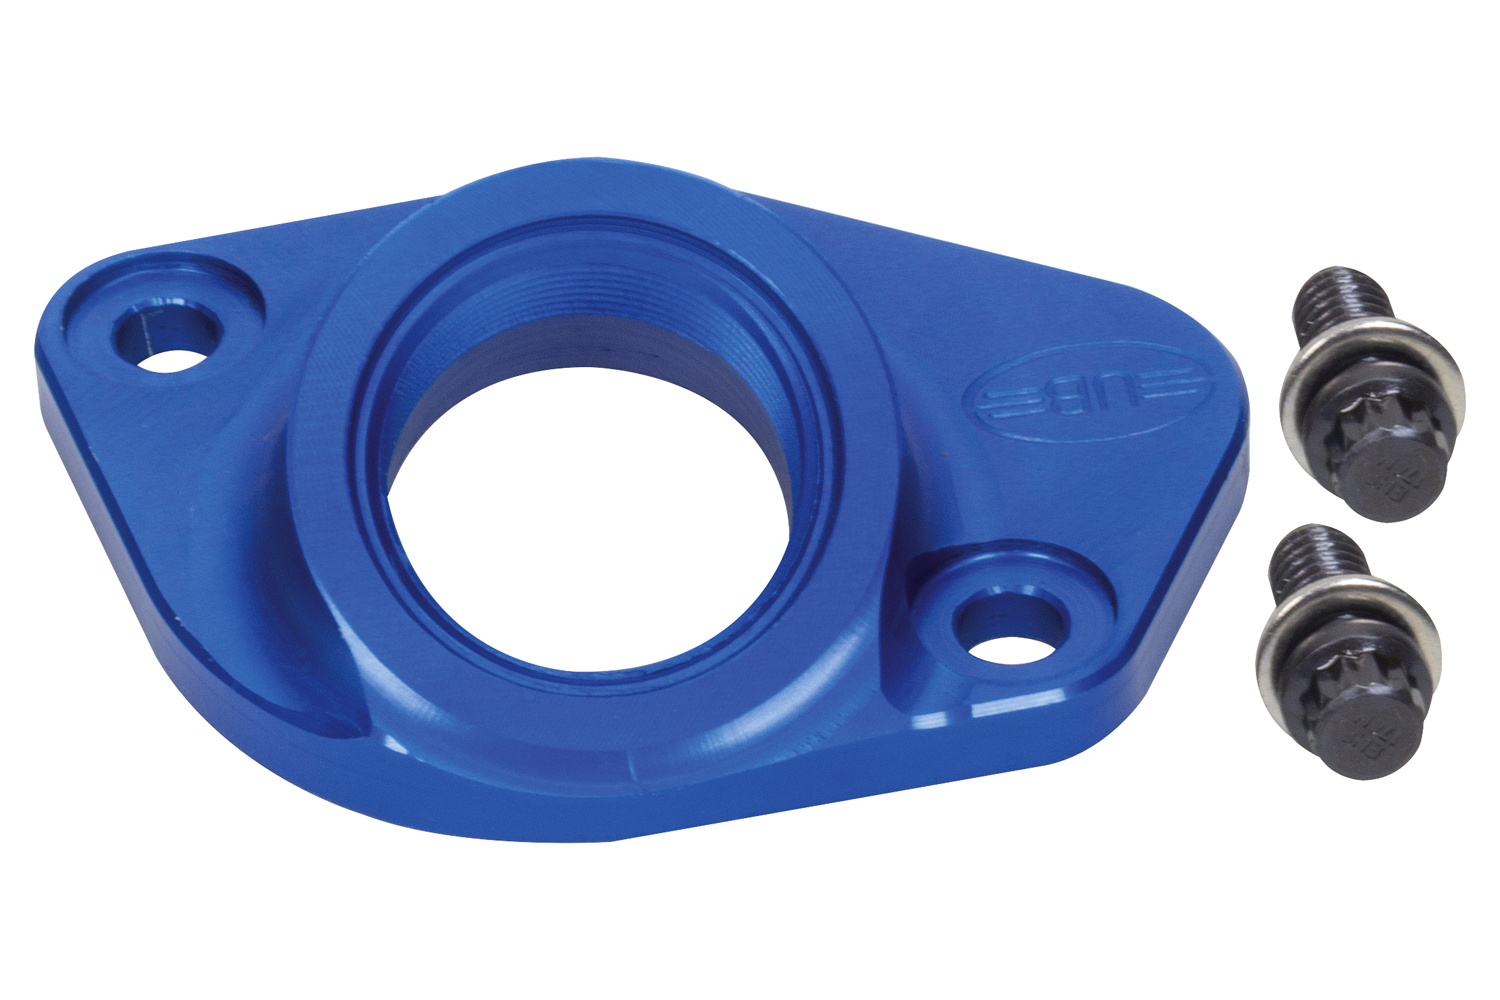 U-B Machine 60-1251-A Water Neck, Straight, 1-1/2 in AN, Bolt-On, Billet Aluminum, Blue Anodized, Small Block Ford, Each